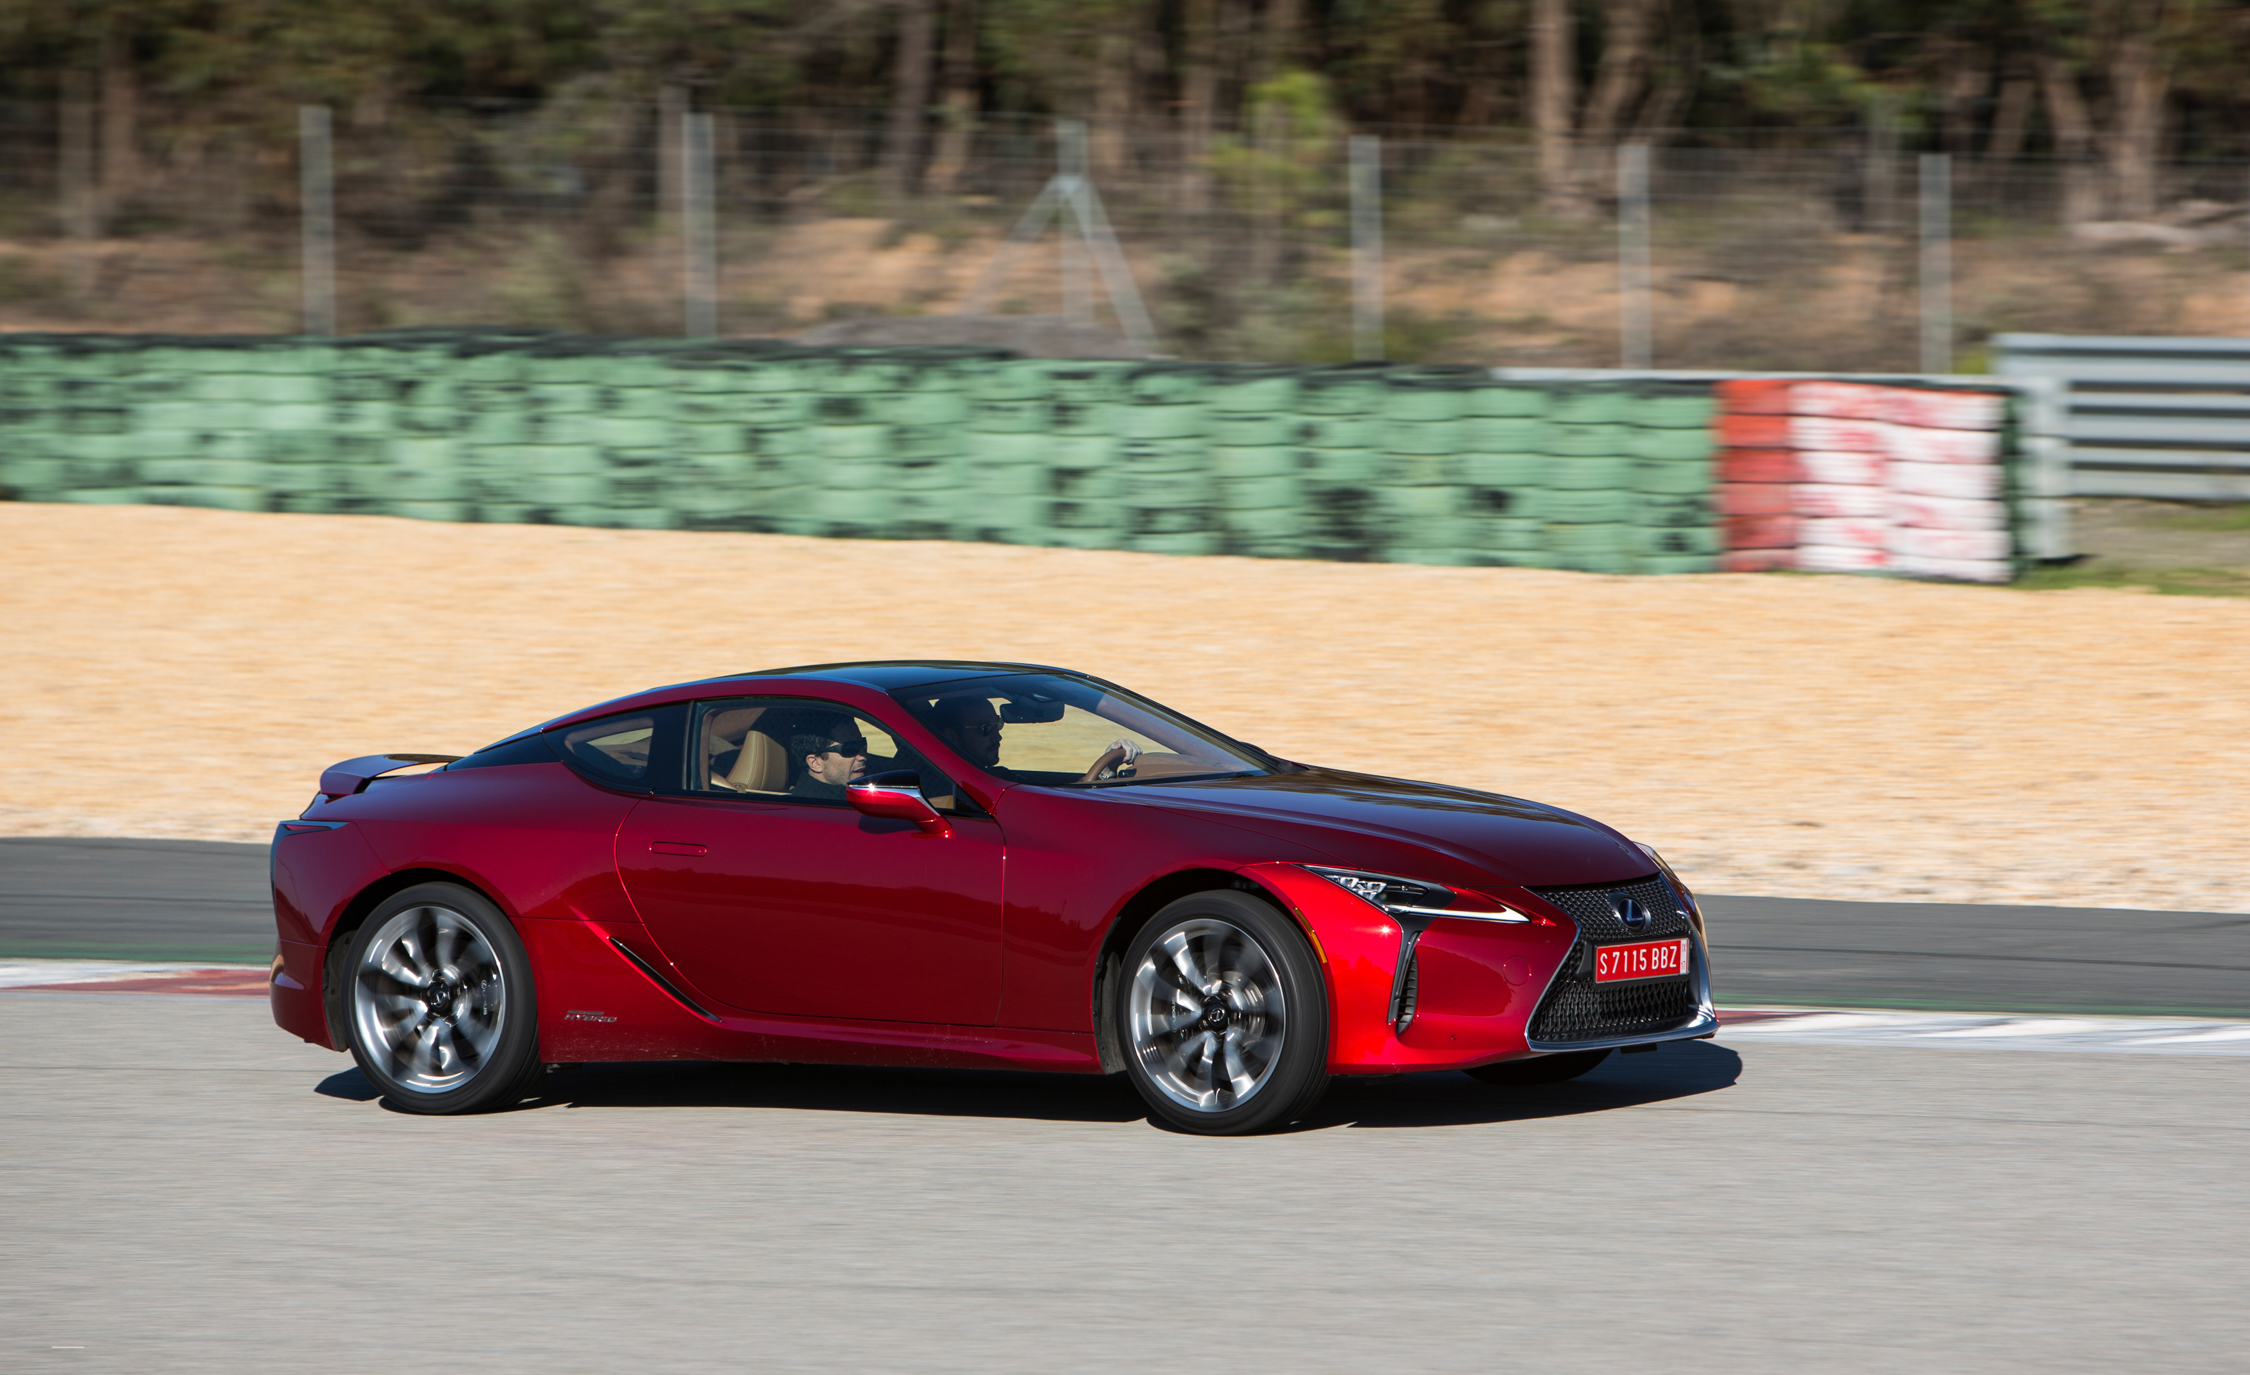 2018 Lexus Lc 500 Red Test Drive Front And Side View (Photo 23 of 84)